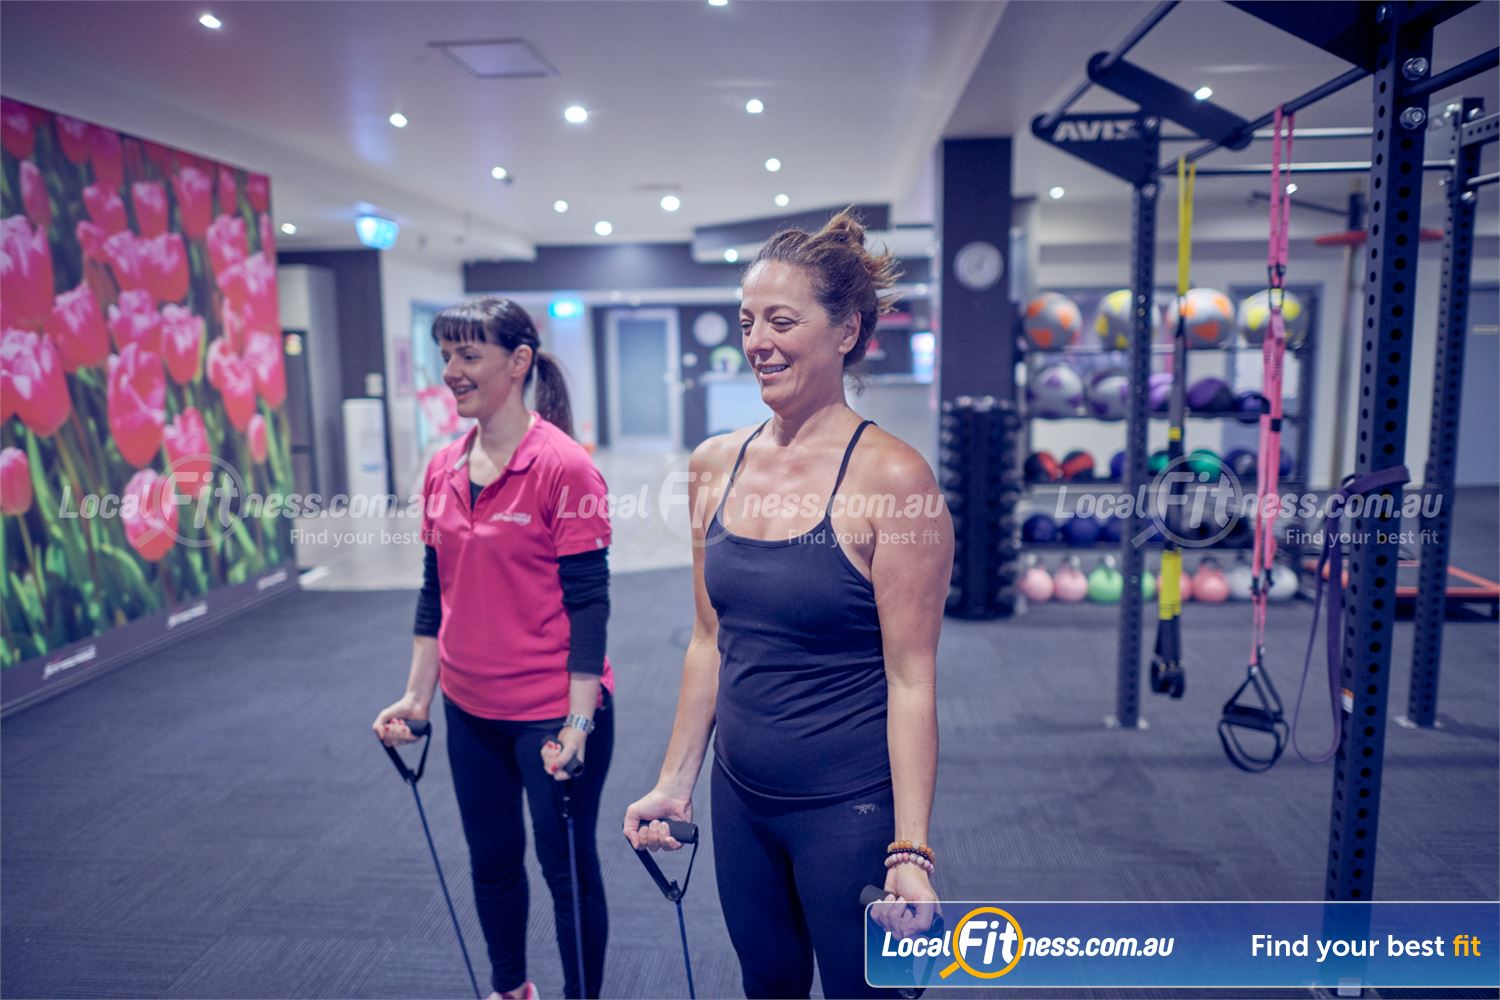 Fernwood Fitness Bulleen Our personal training team can show you the benefits of strength training for women.